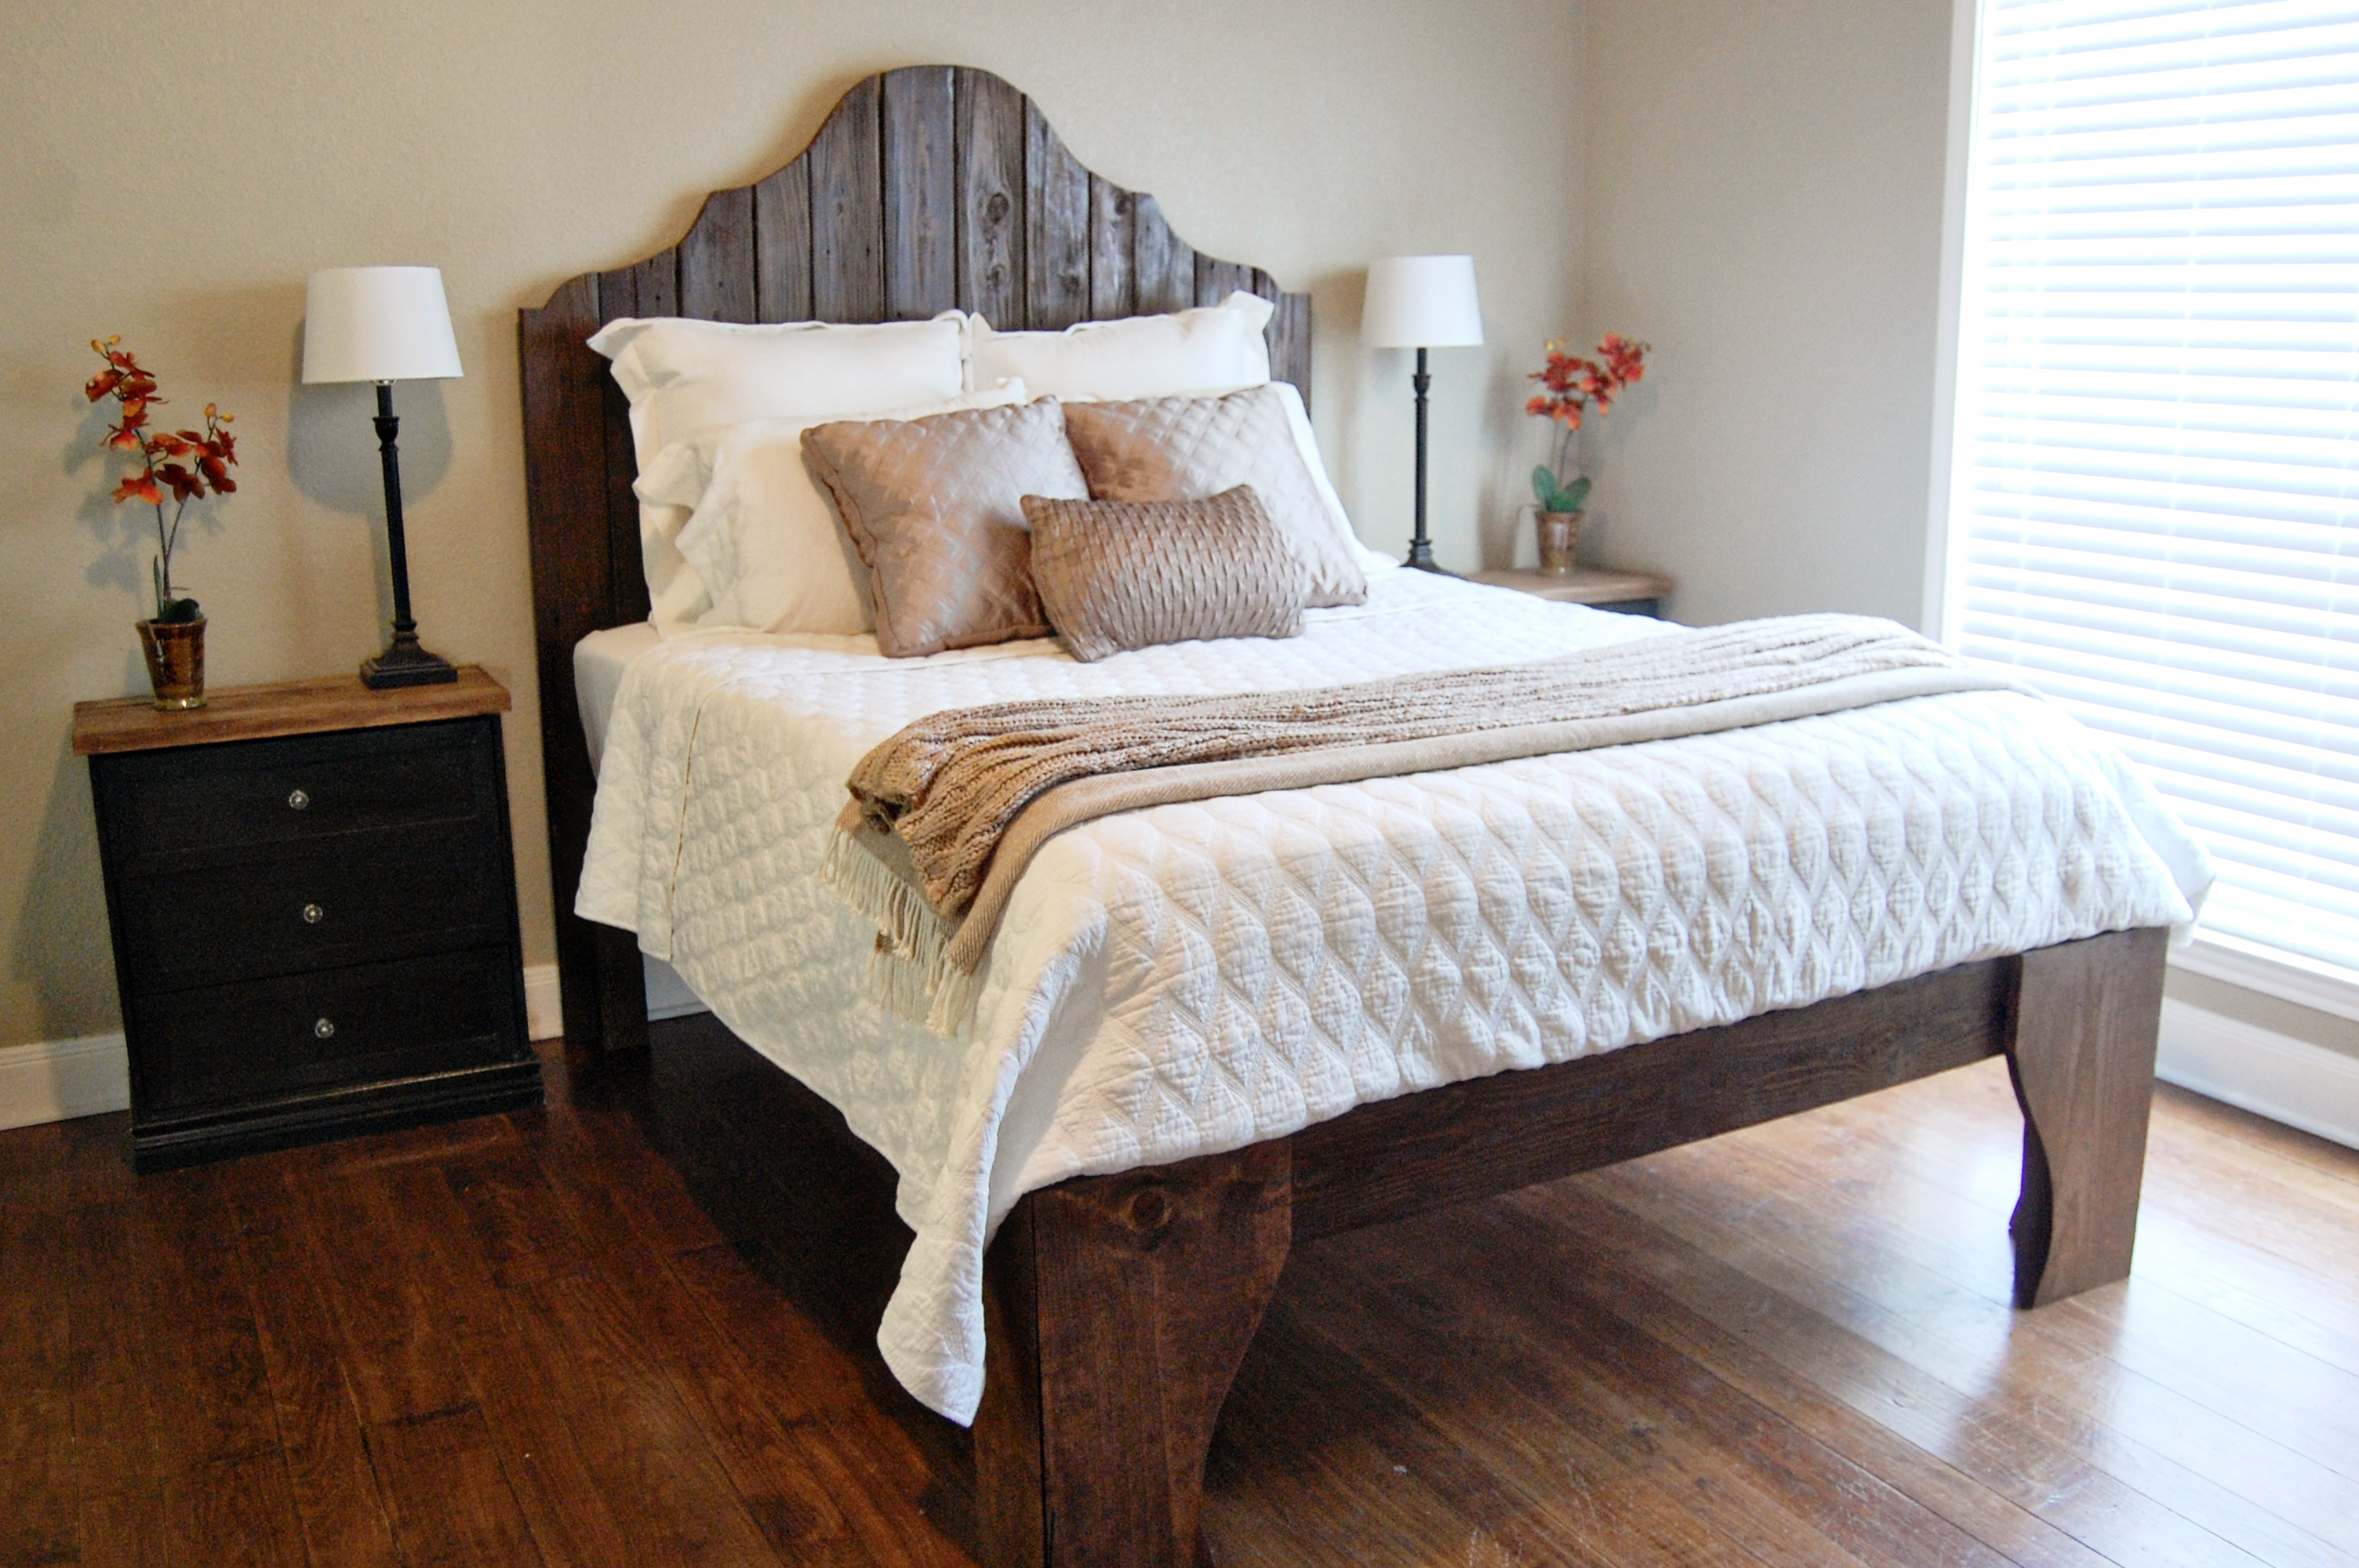 21 diy bed frames to give yourself the restful spot of your dreams Beautiful bedroom chairs that make it a joy getting out of bed